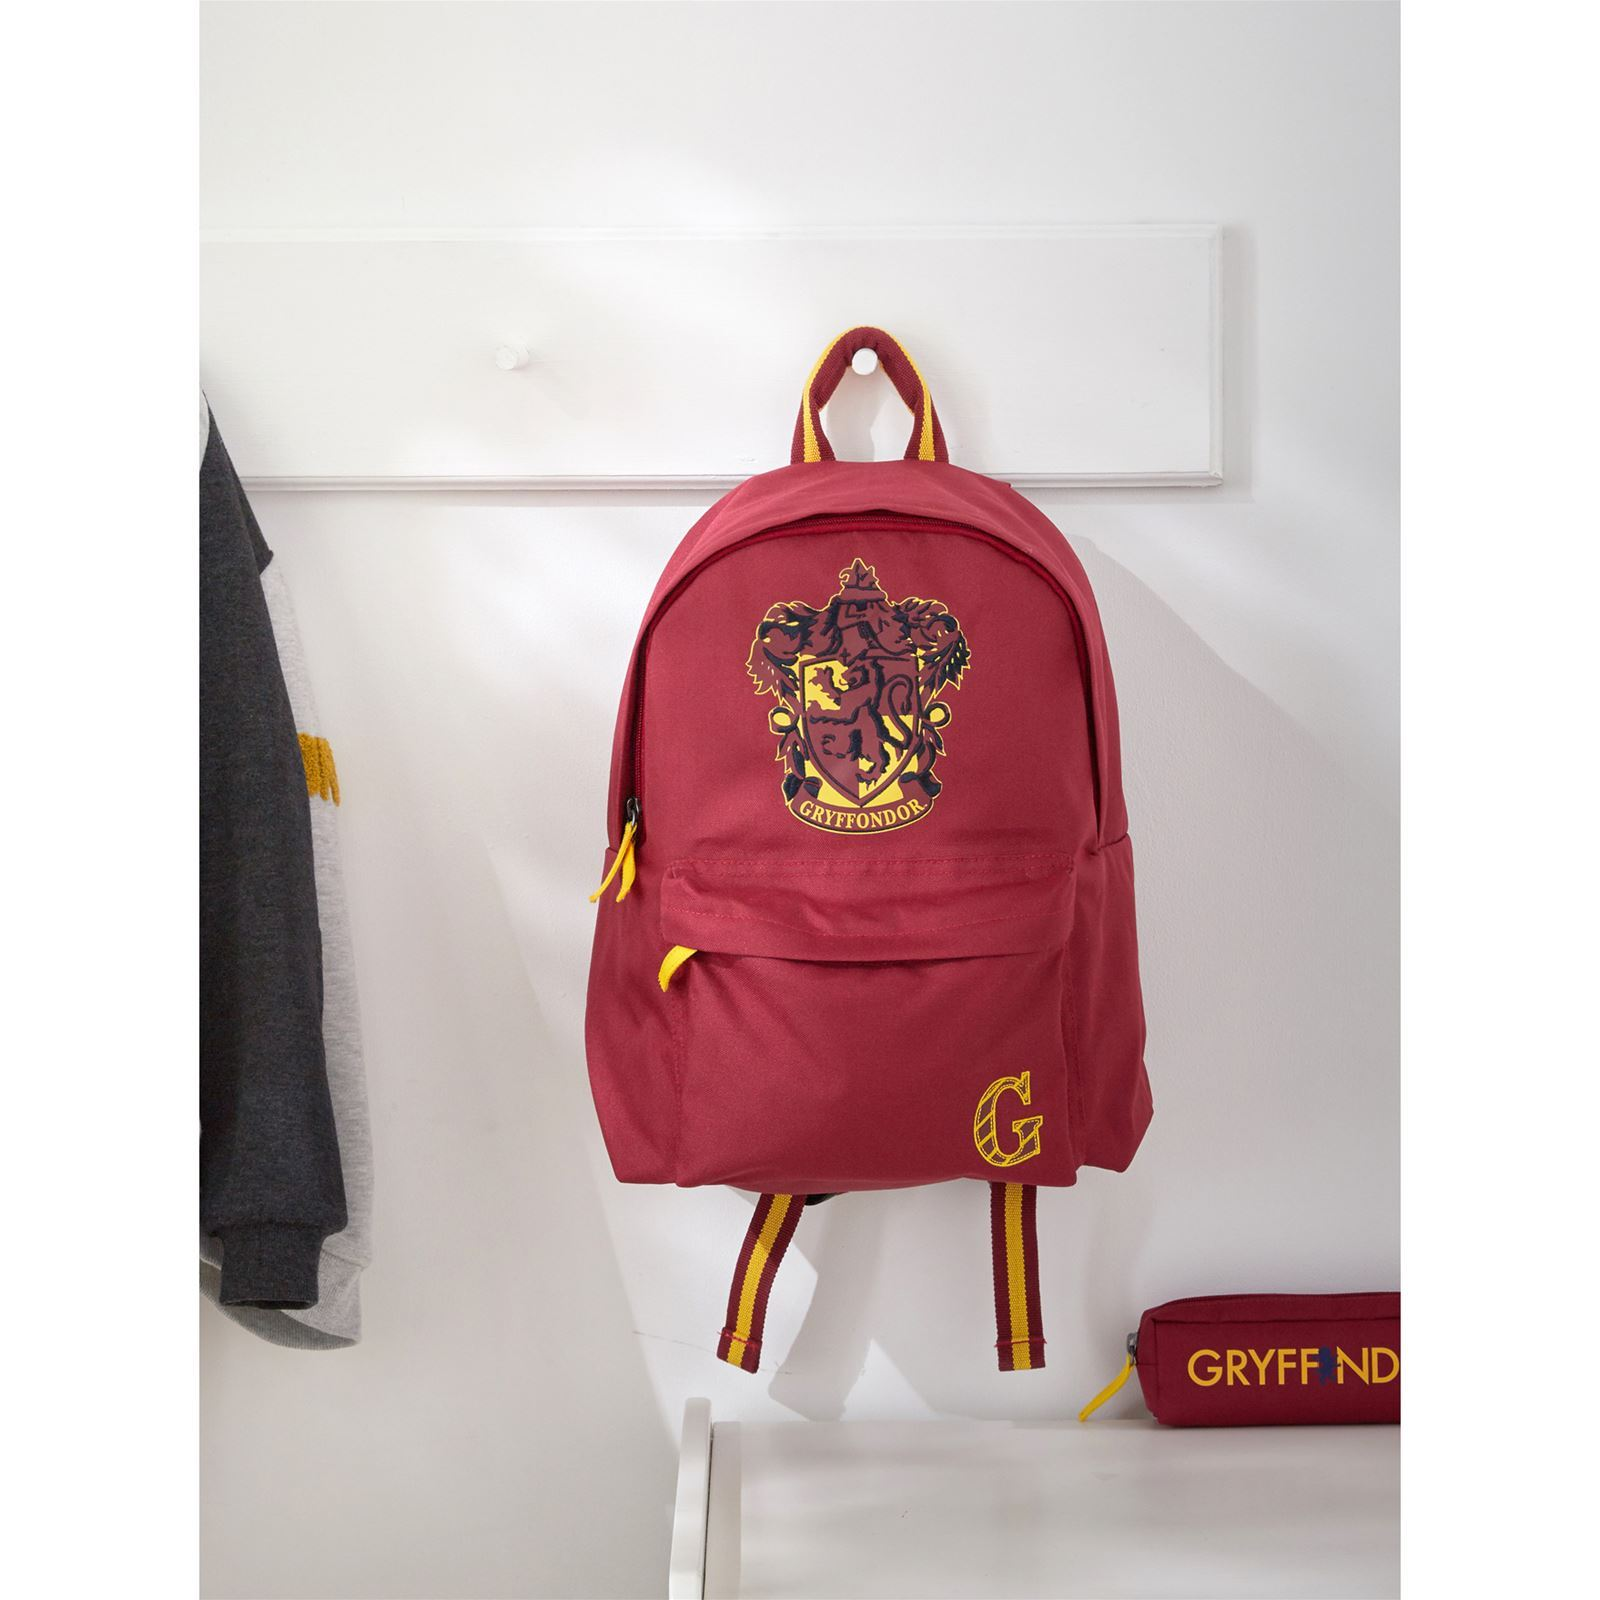 Cyrillus Harry Potter - Sac à Dos - bordeaux   BrandAlley 544c542afbd